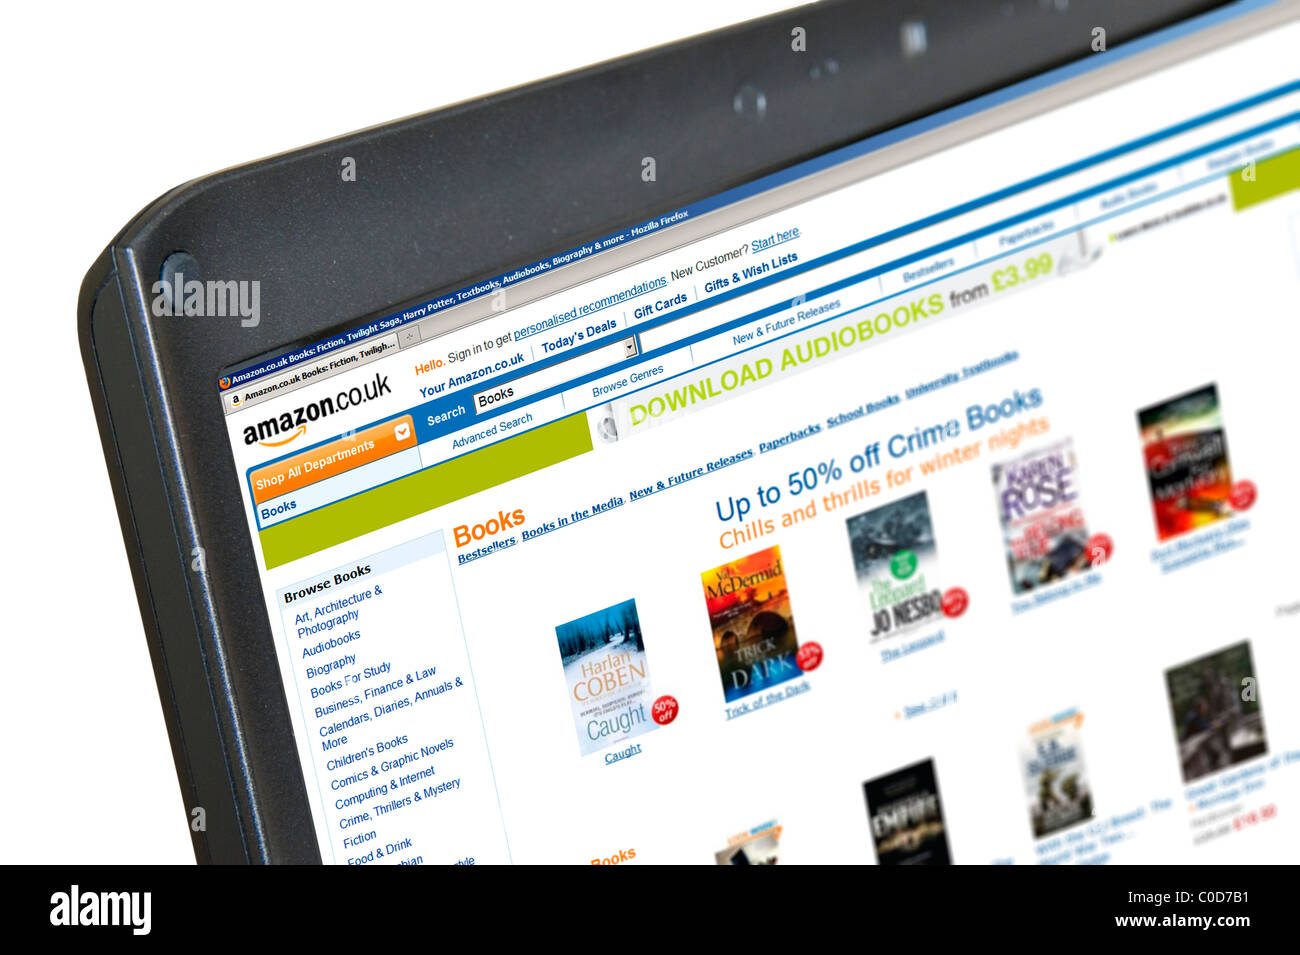 Amazon Uk Books Shopping For Books On The Amazon Co Uk Website Uk Stock Photo